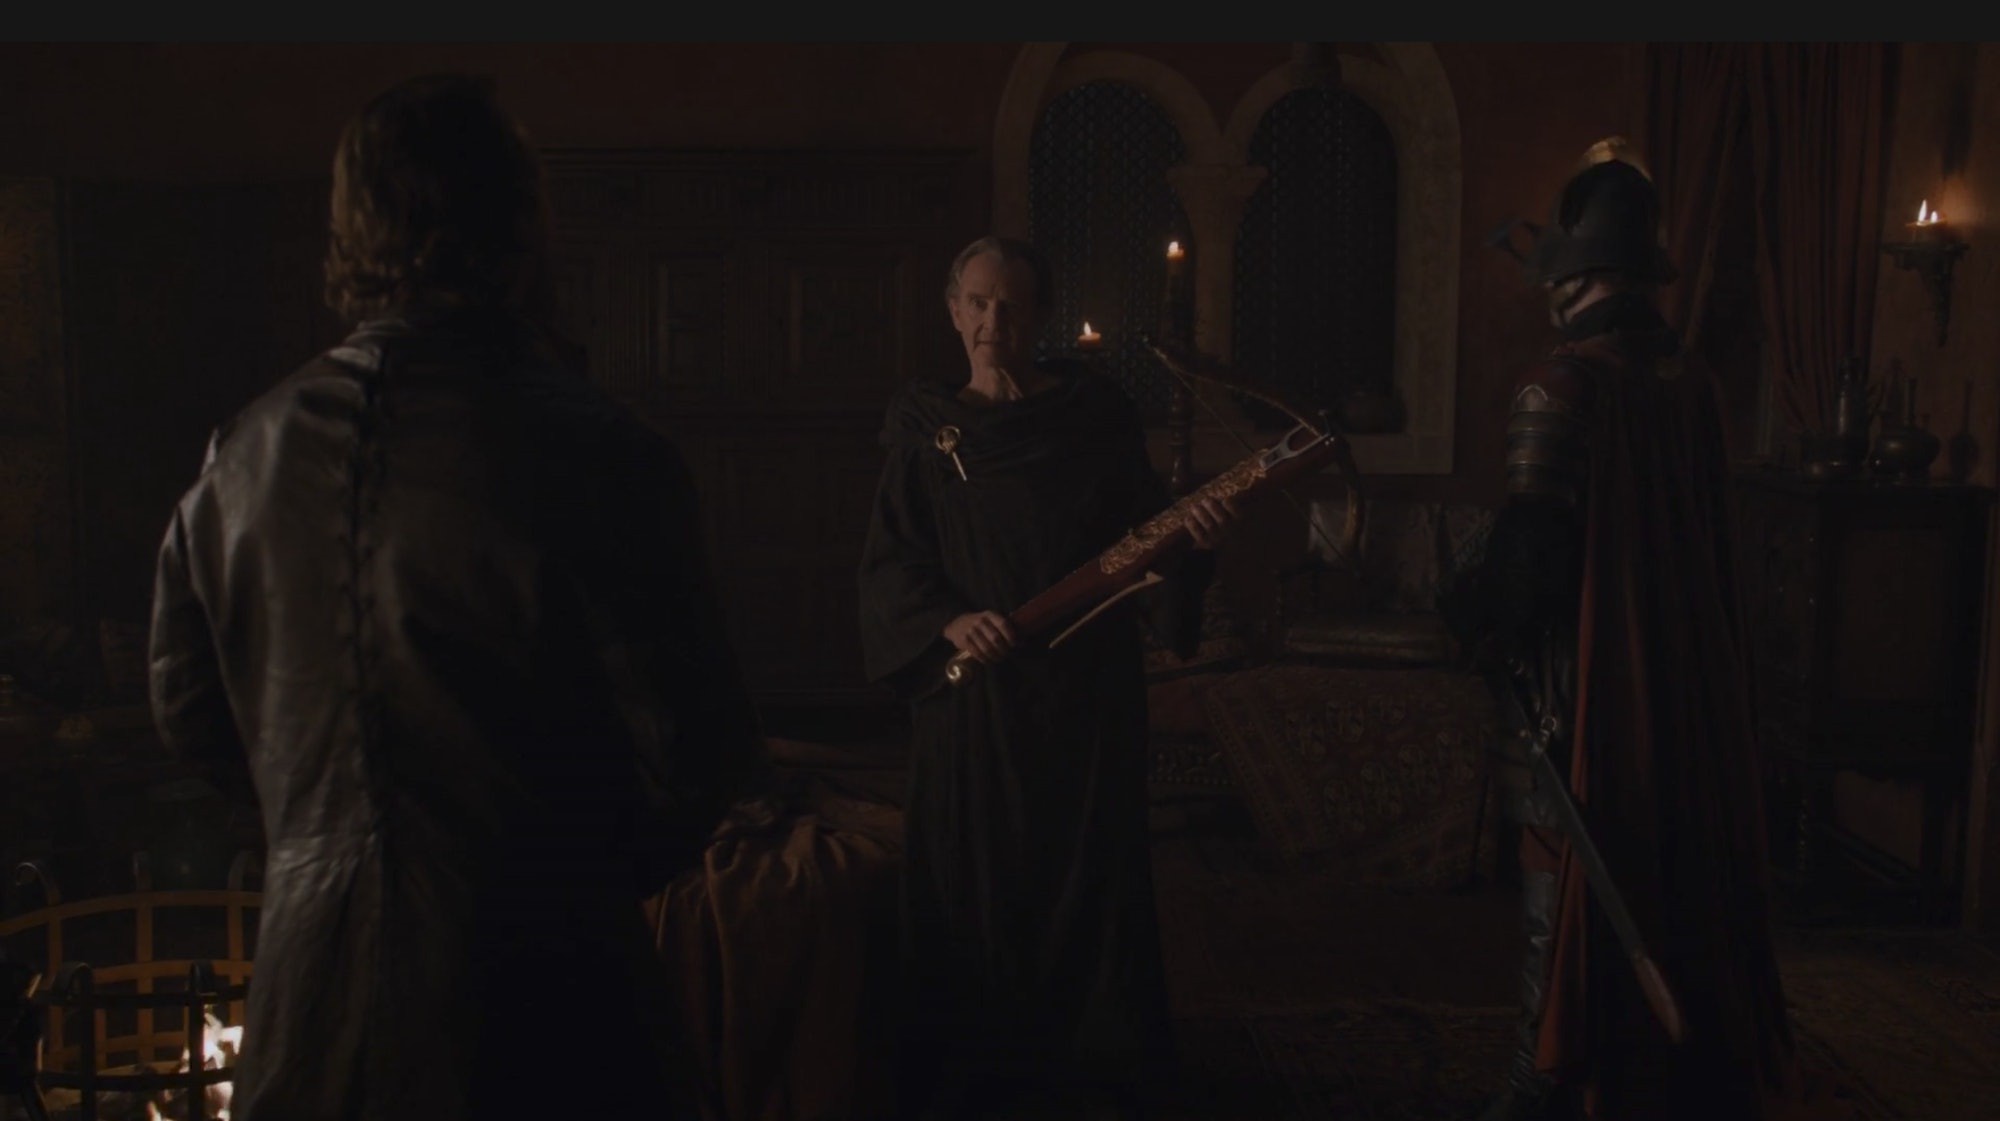 Qyburn gifts Bronn with Tyrion's crossbow in 'Game of Thrones' in Season 8